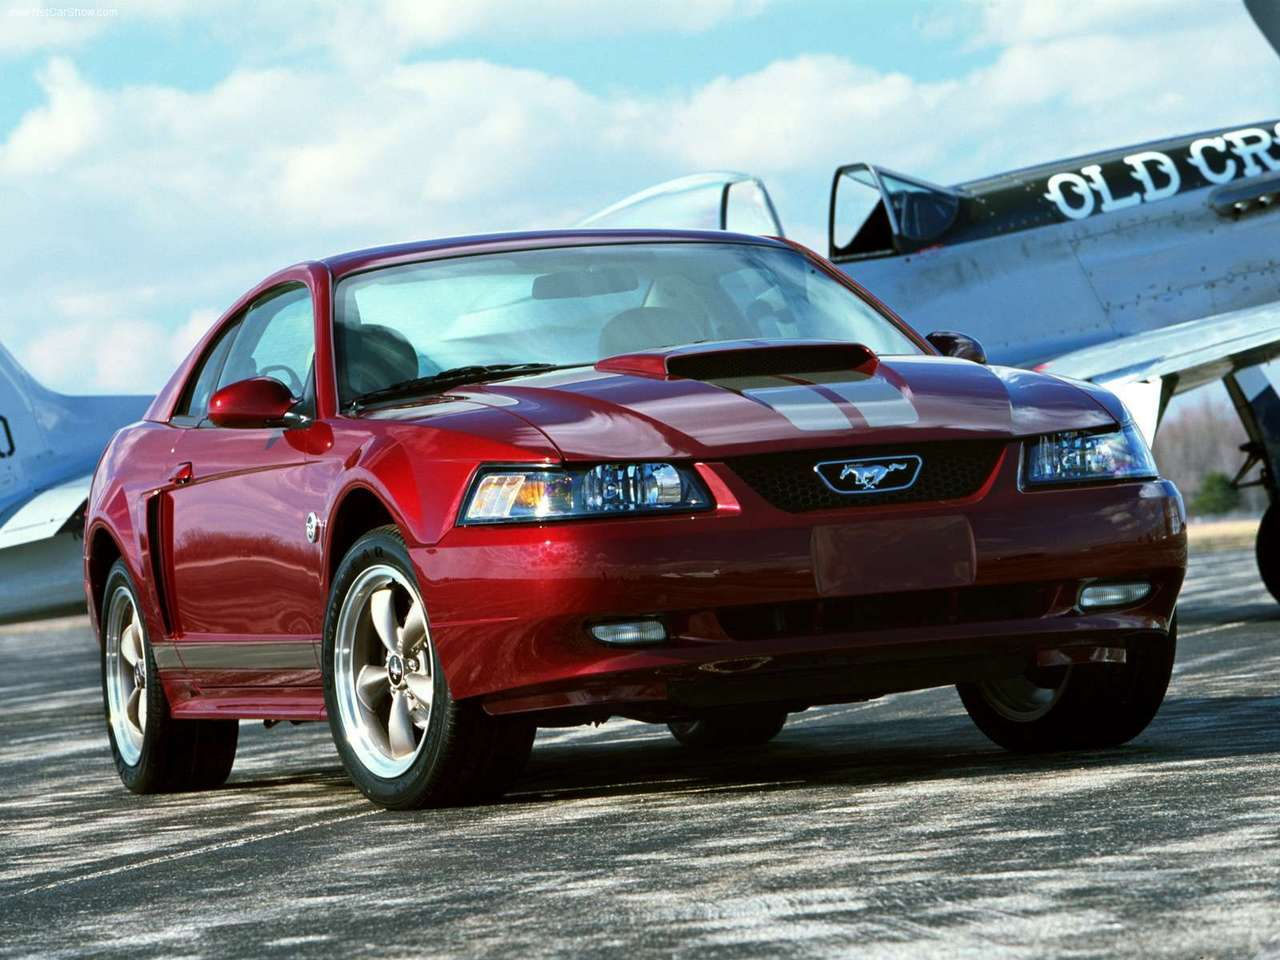 Ford Mustang 2004 Photo - 1